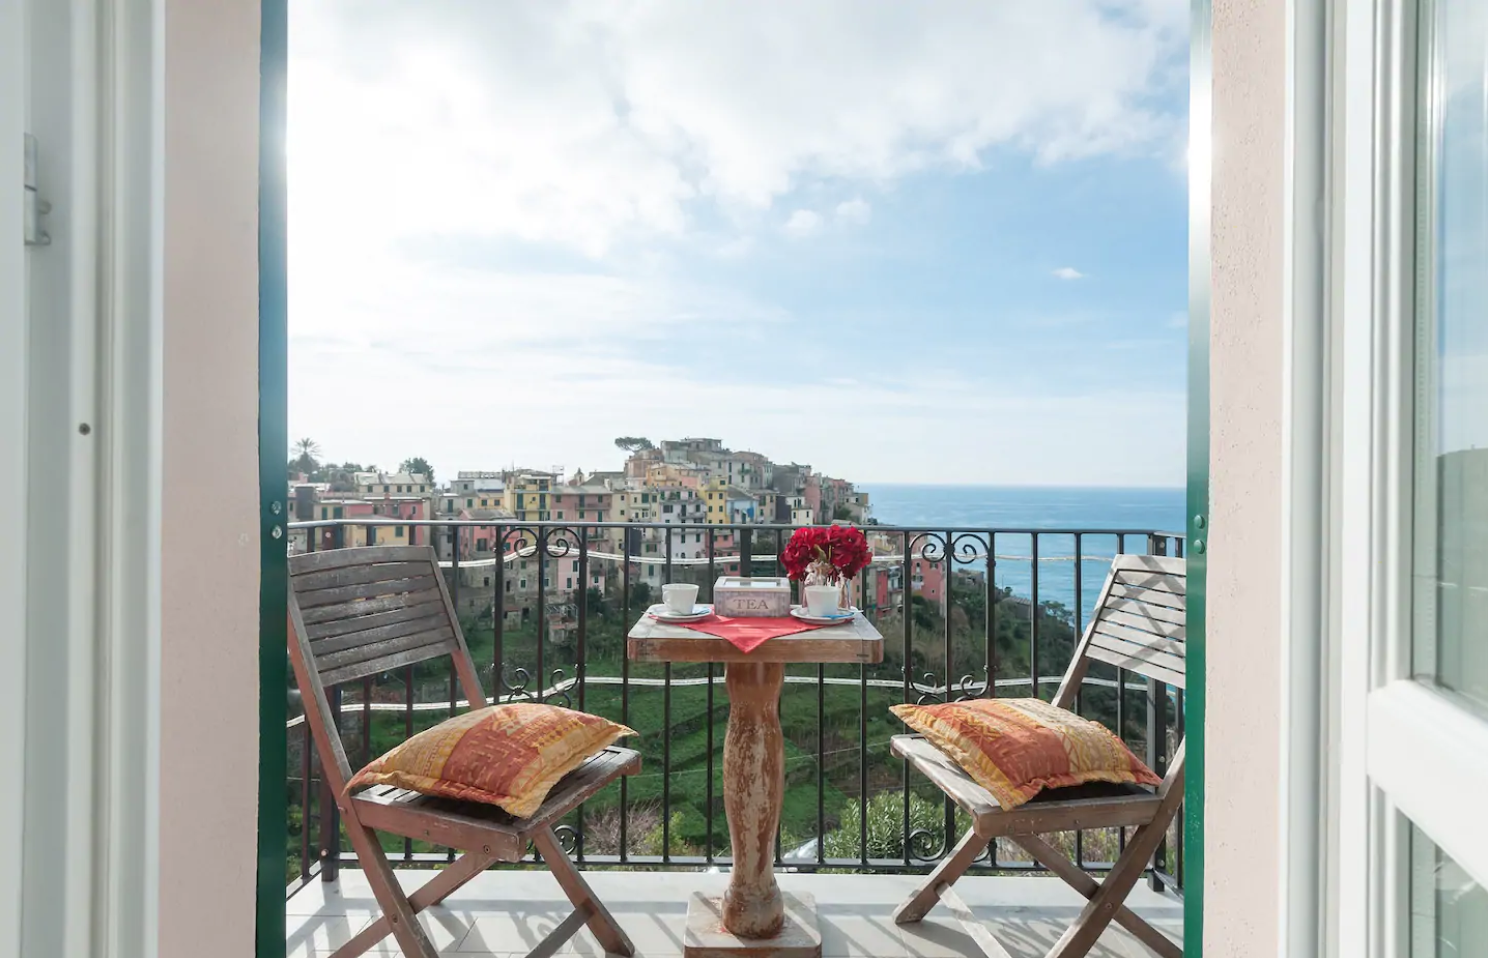 Bed and Breakfasts are also an option when looking for AirBnbs in Cinque Terre